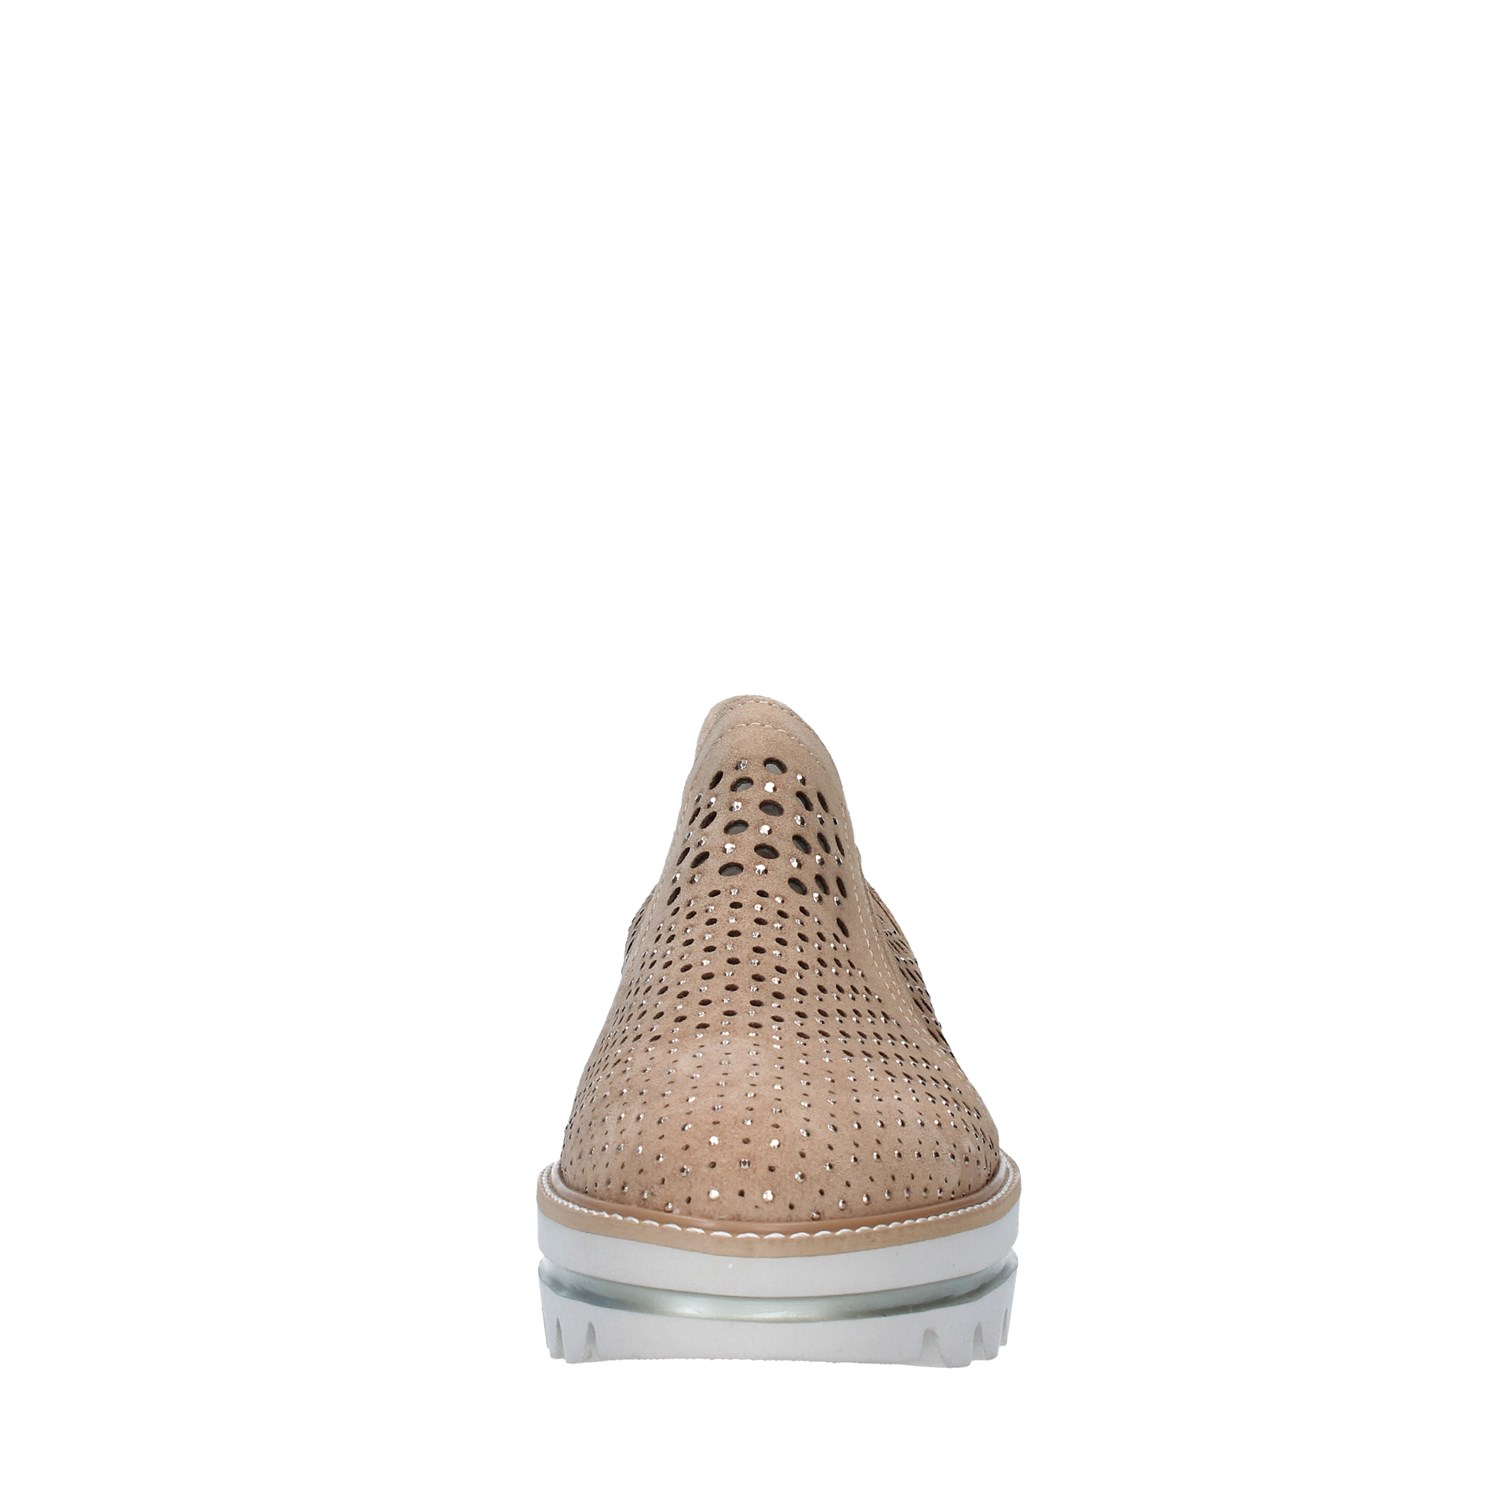 Callaghan Shoes Woman Slip on BEIGE 14834